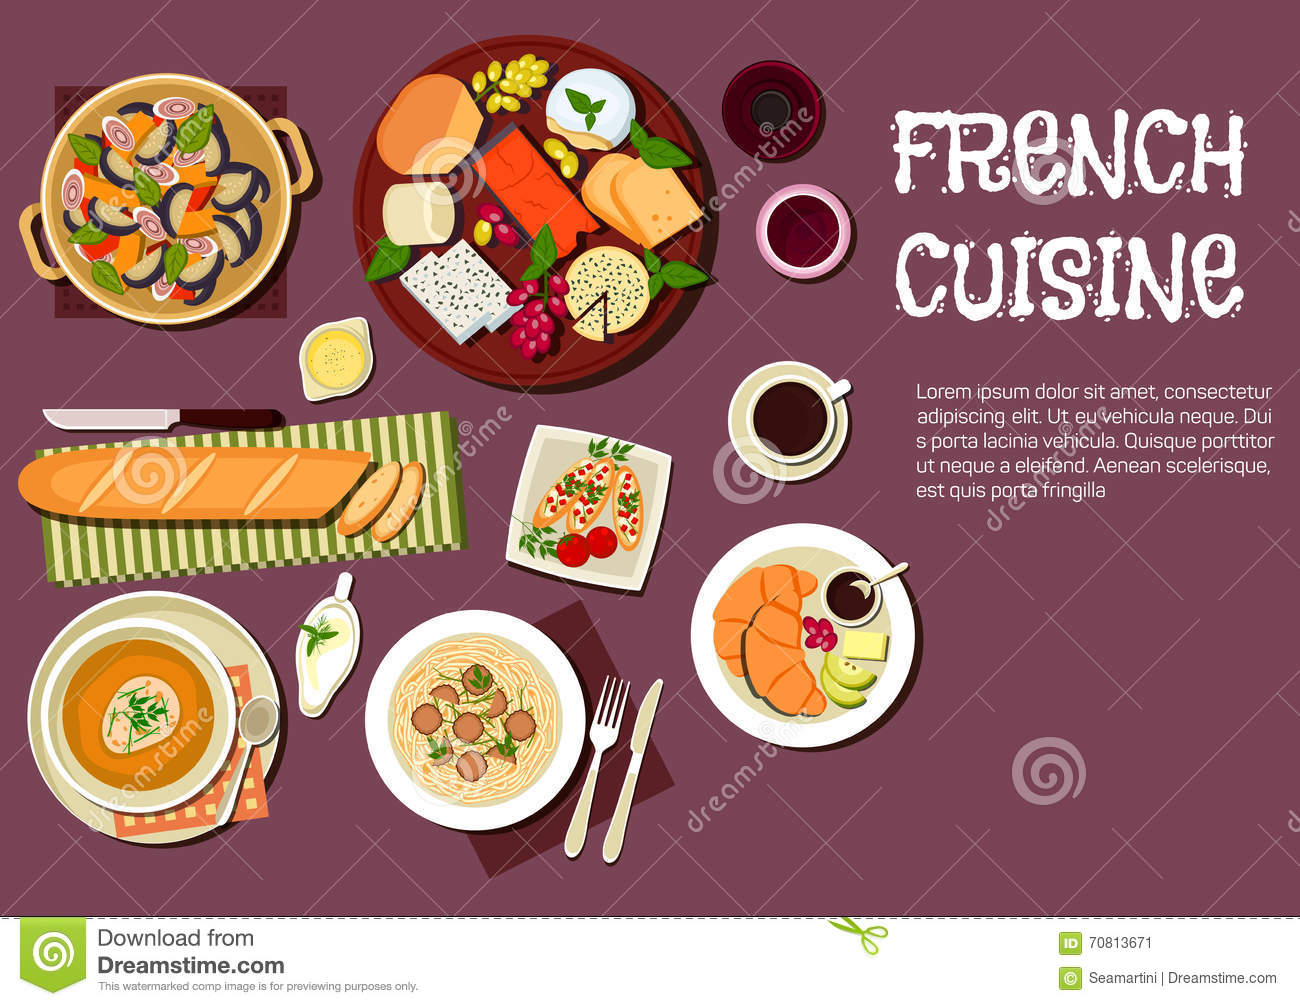 French cuisine hubert yuflickr with french cuisine for Cuisine francaise